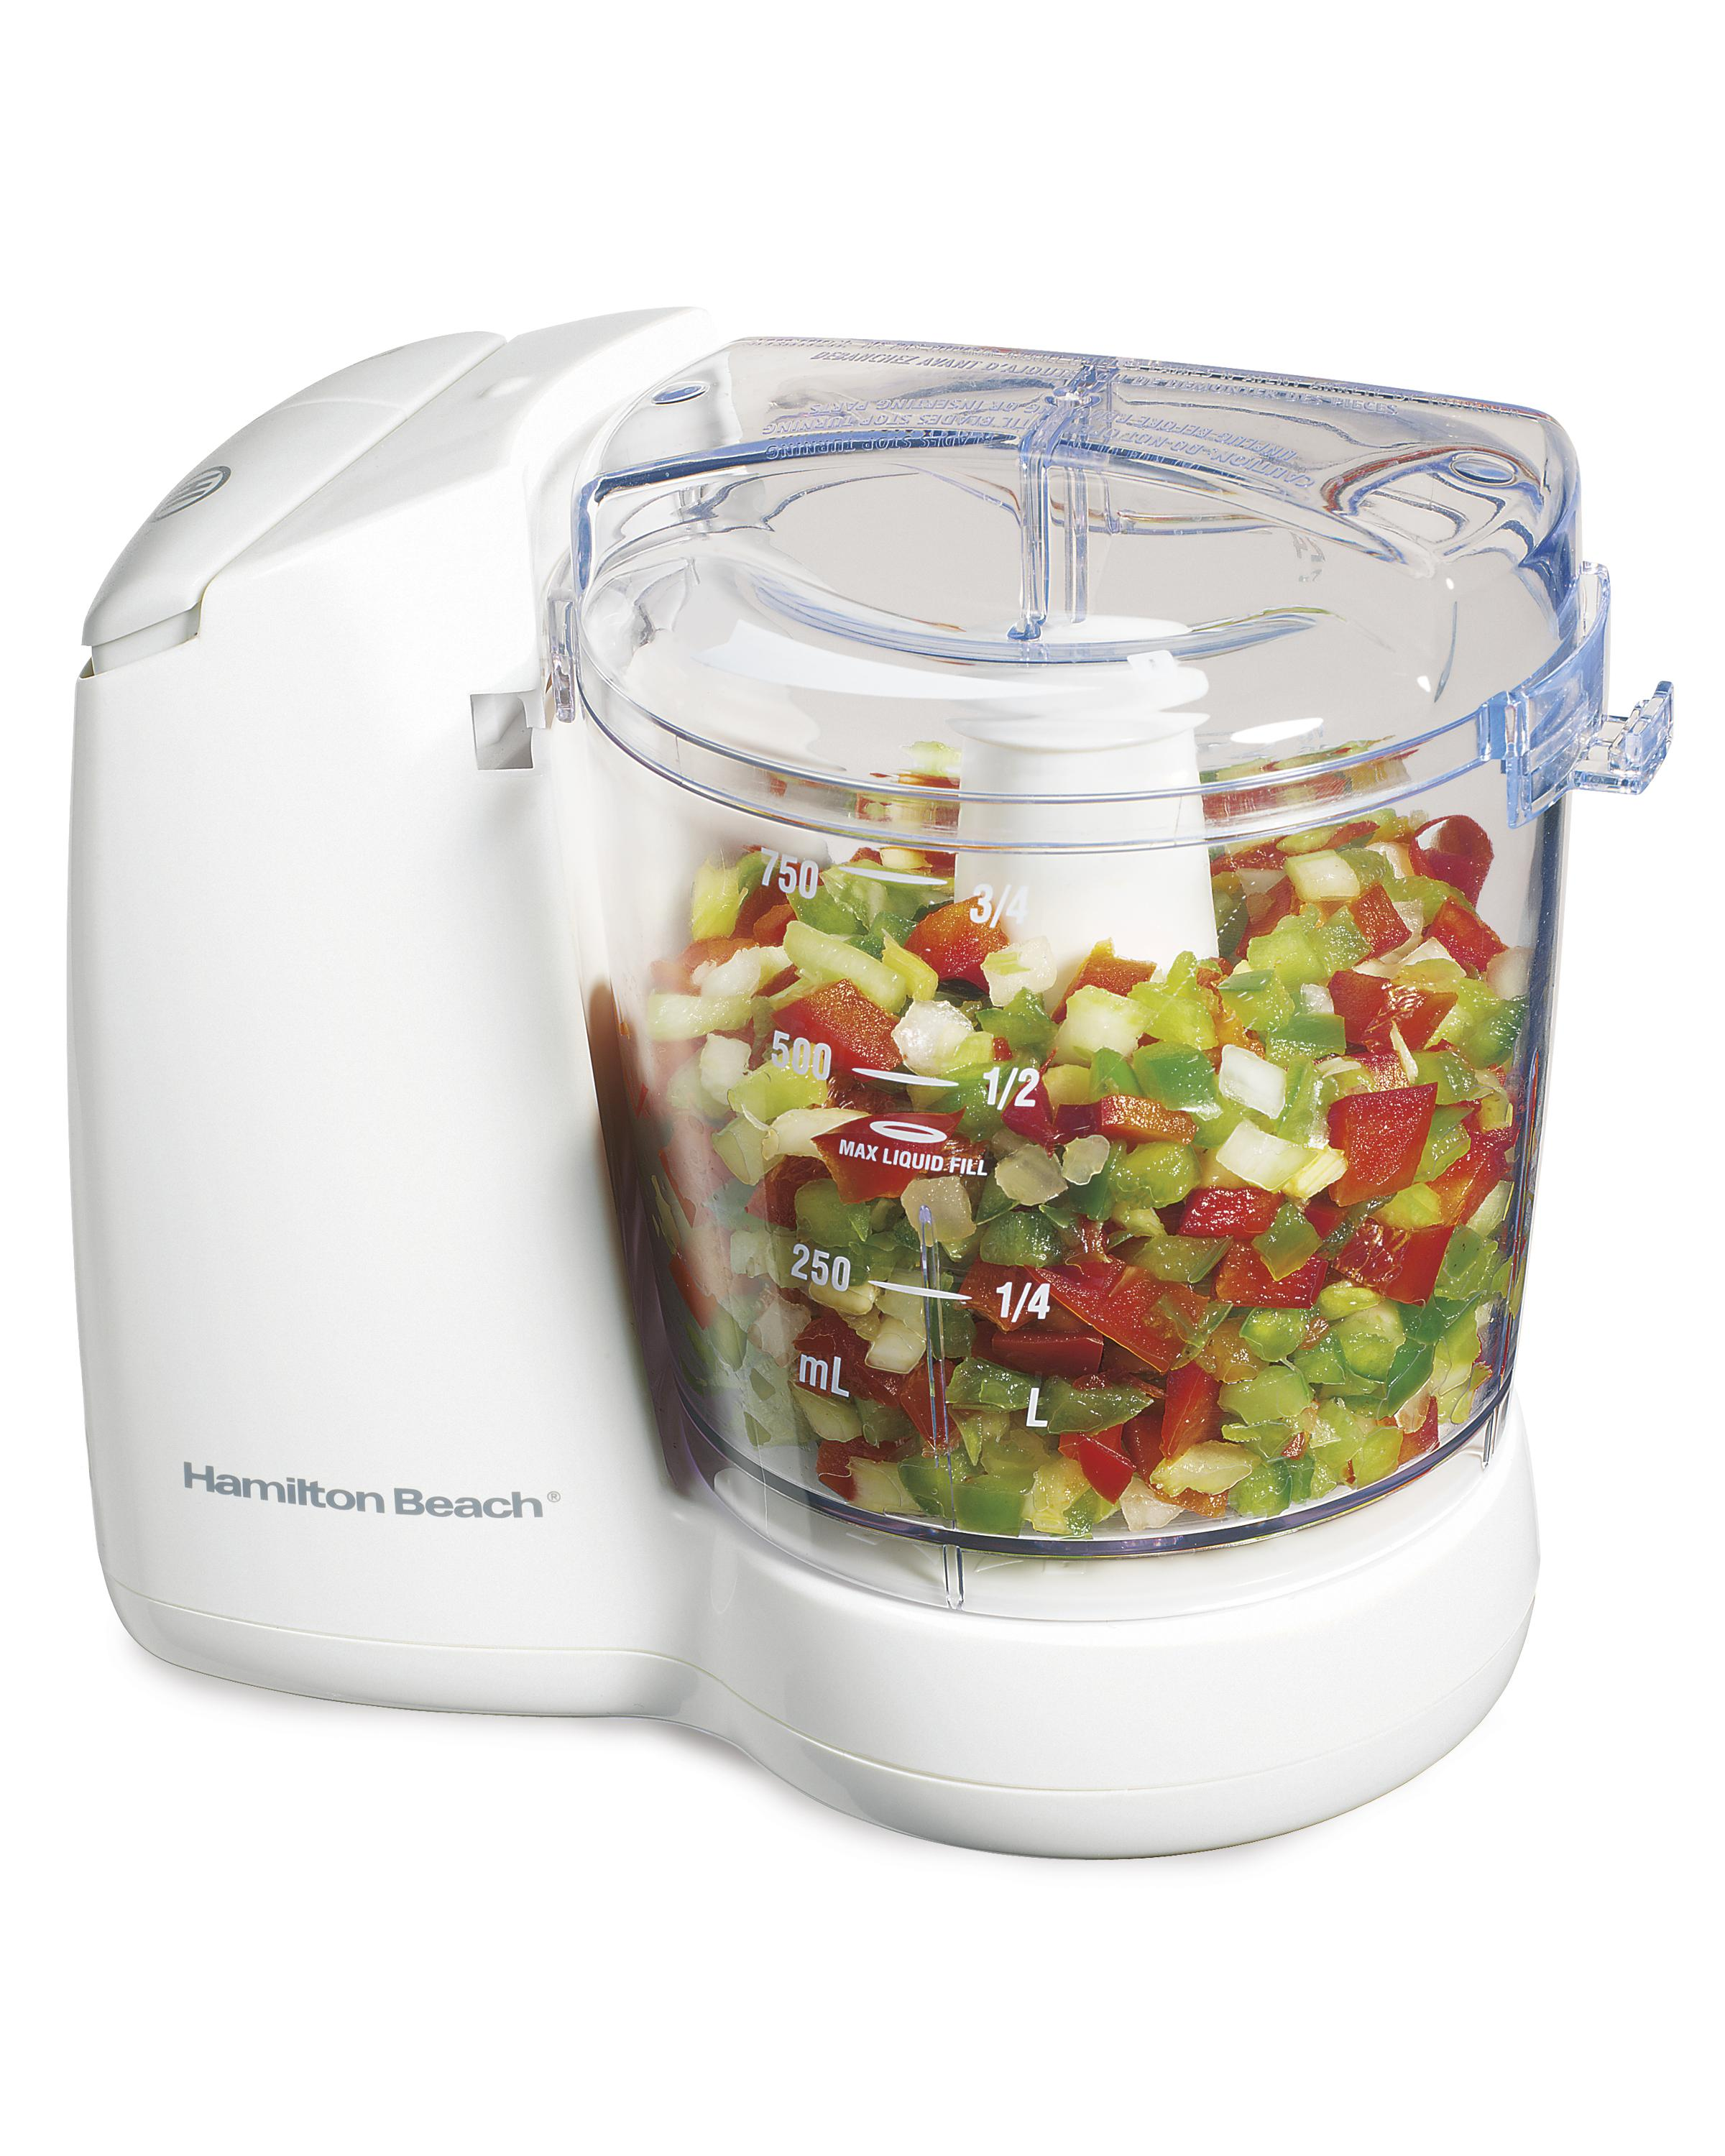 Amazon.com: Hamilton Beach 72600 Fresh Chop 3-Cup Food Chopper ...